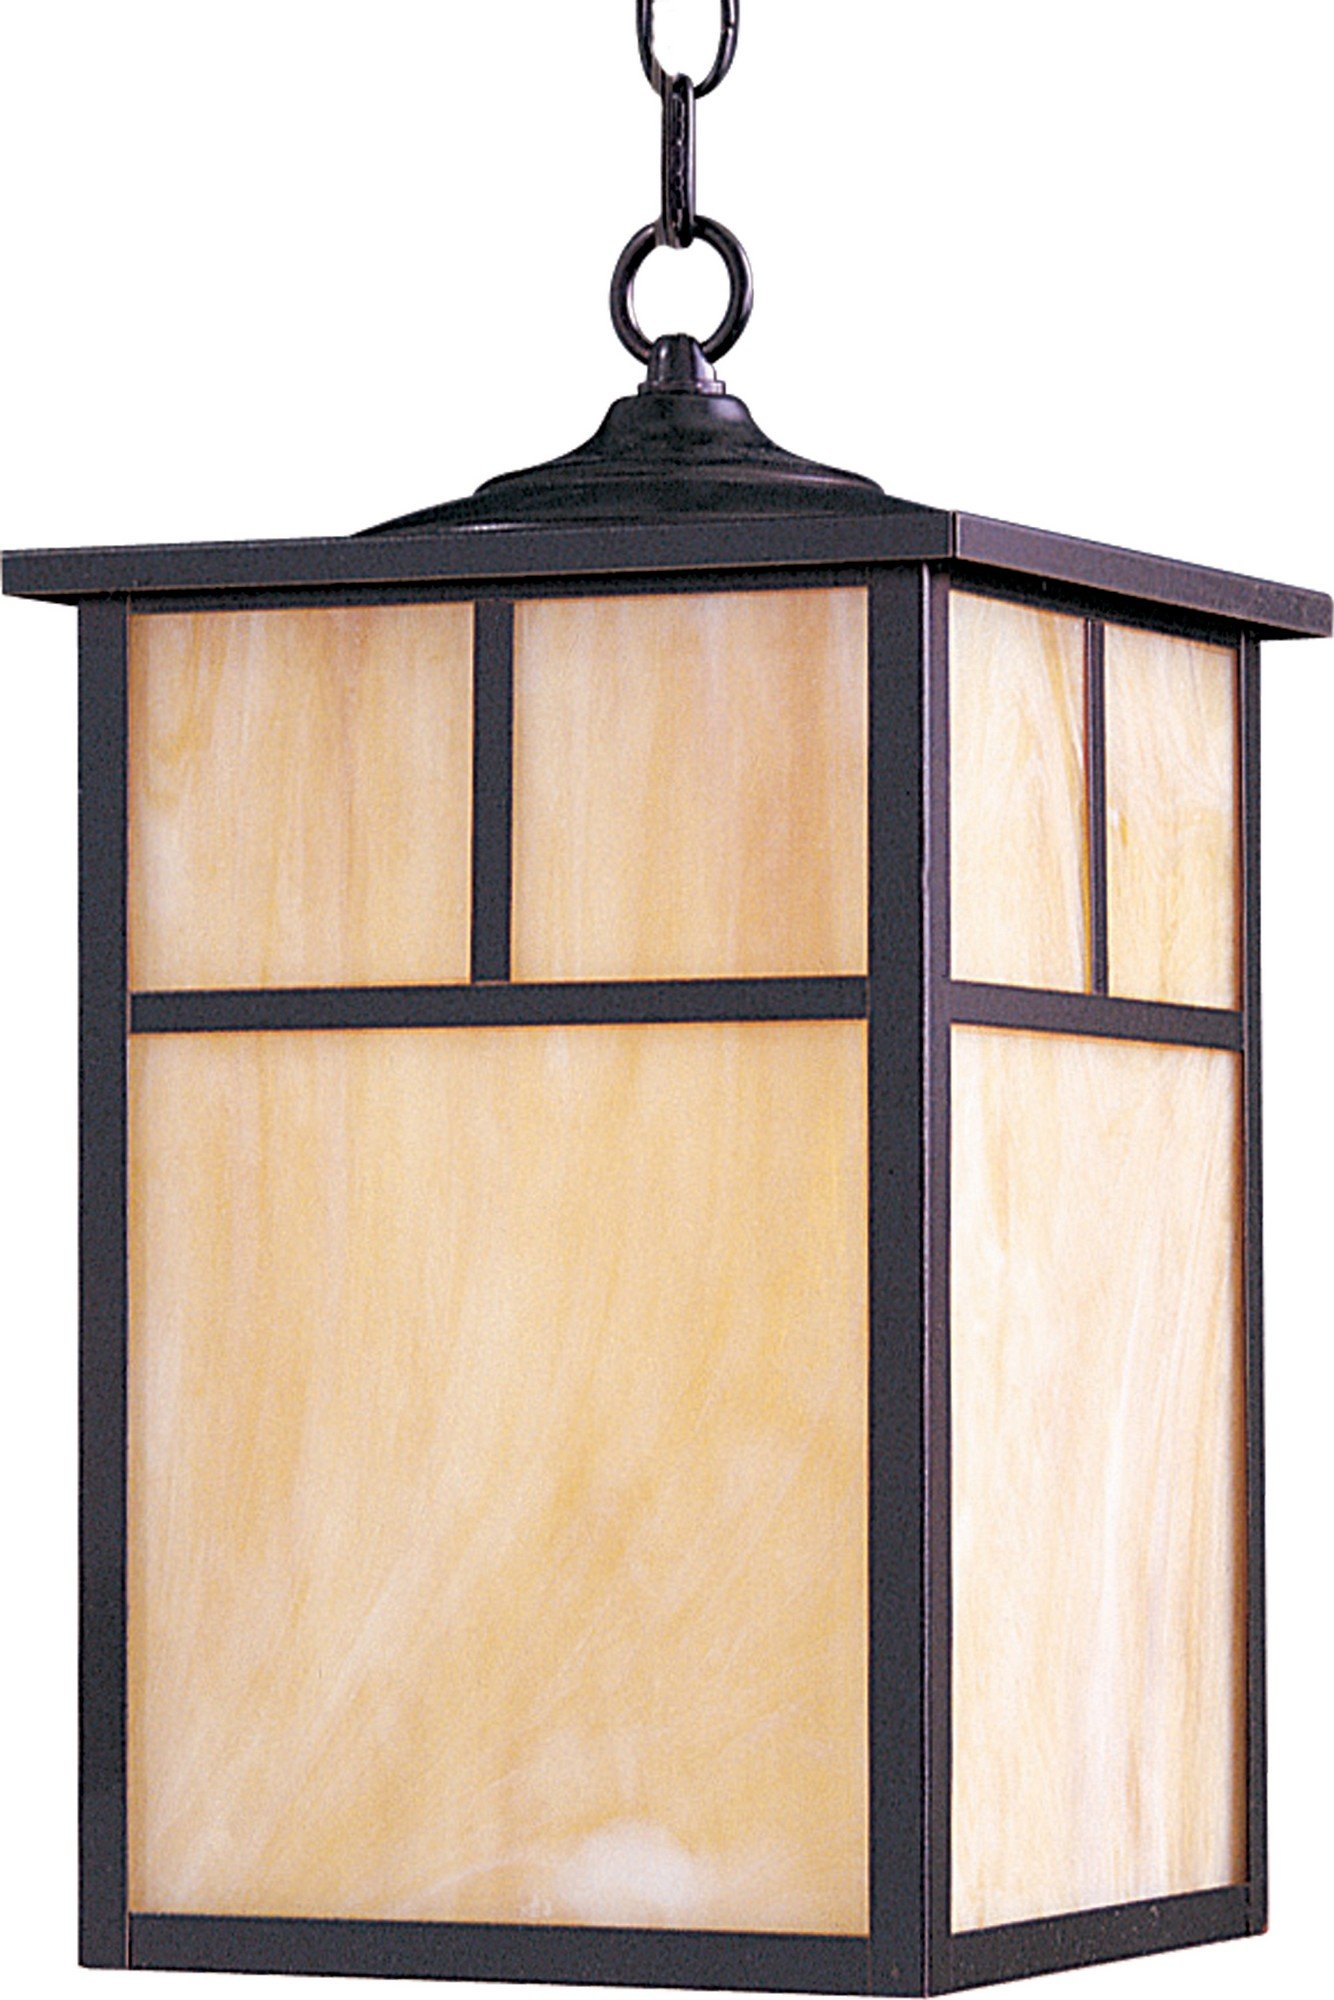 Maxim 4058HOBU Coldwater 1-Light Outdoor Hanging Lantern, Burnished Finish, Honey Glass, MB Incandescent Incandescent Bulb , 100W Max., Dry Safety Rating, Standard Dimmable, Glass Shade Material, 5750 Rated Lumens